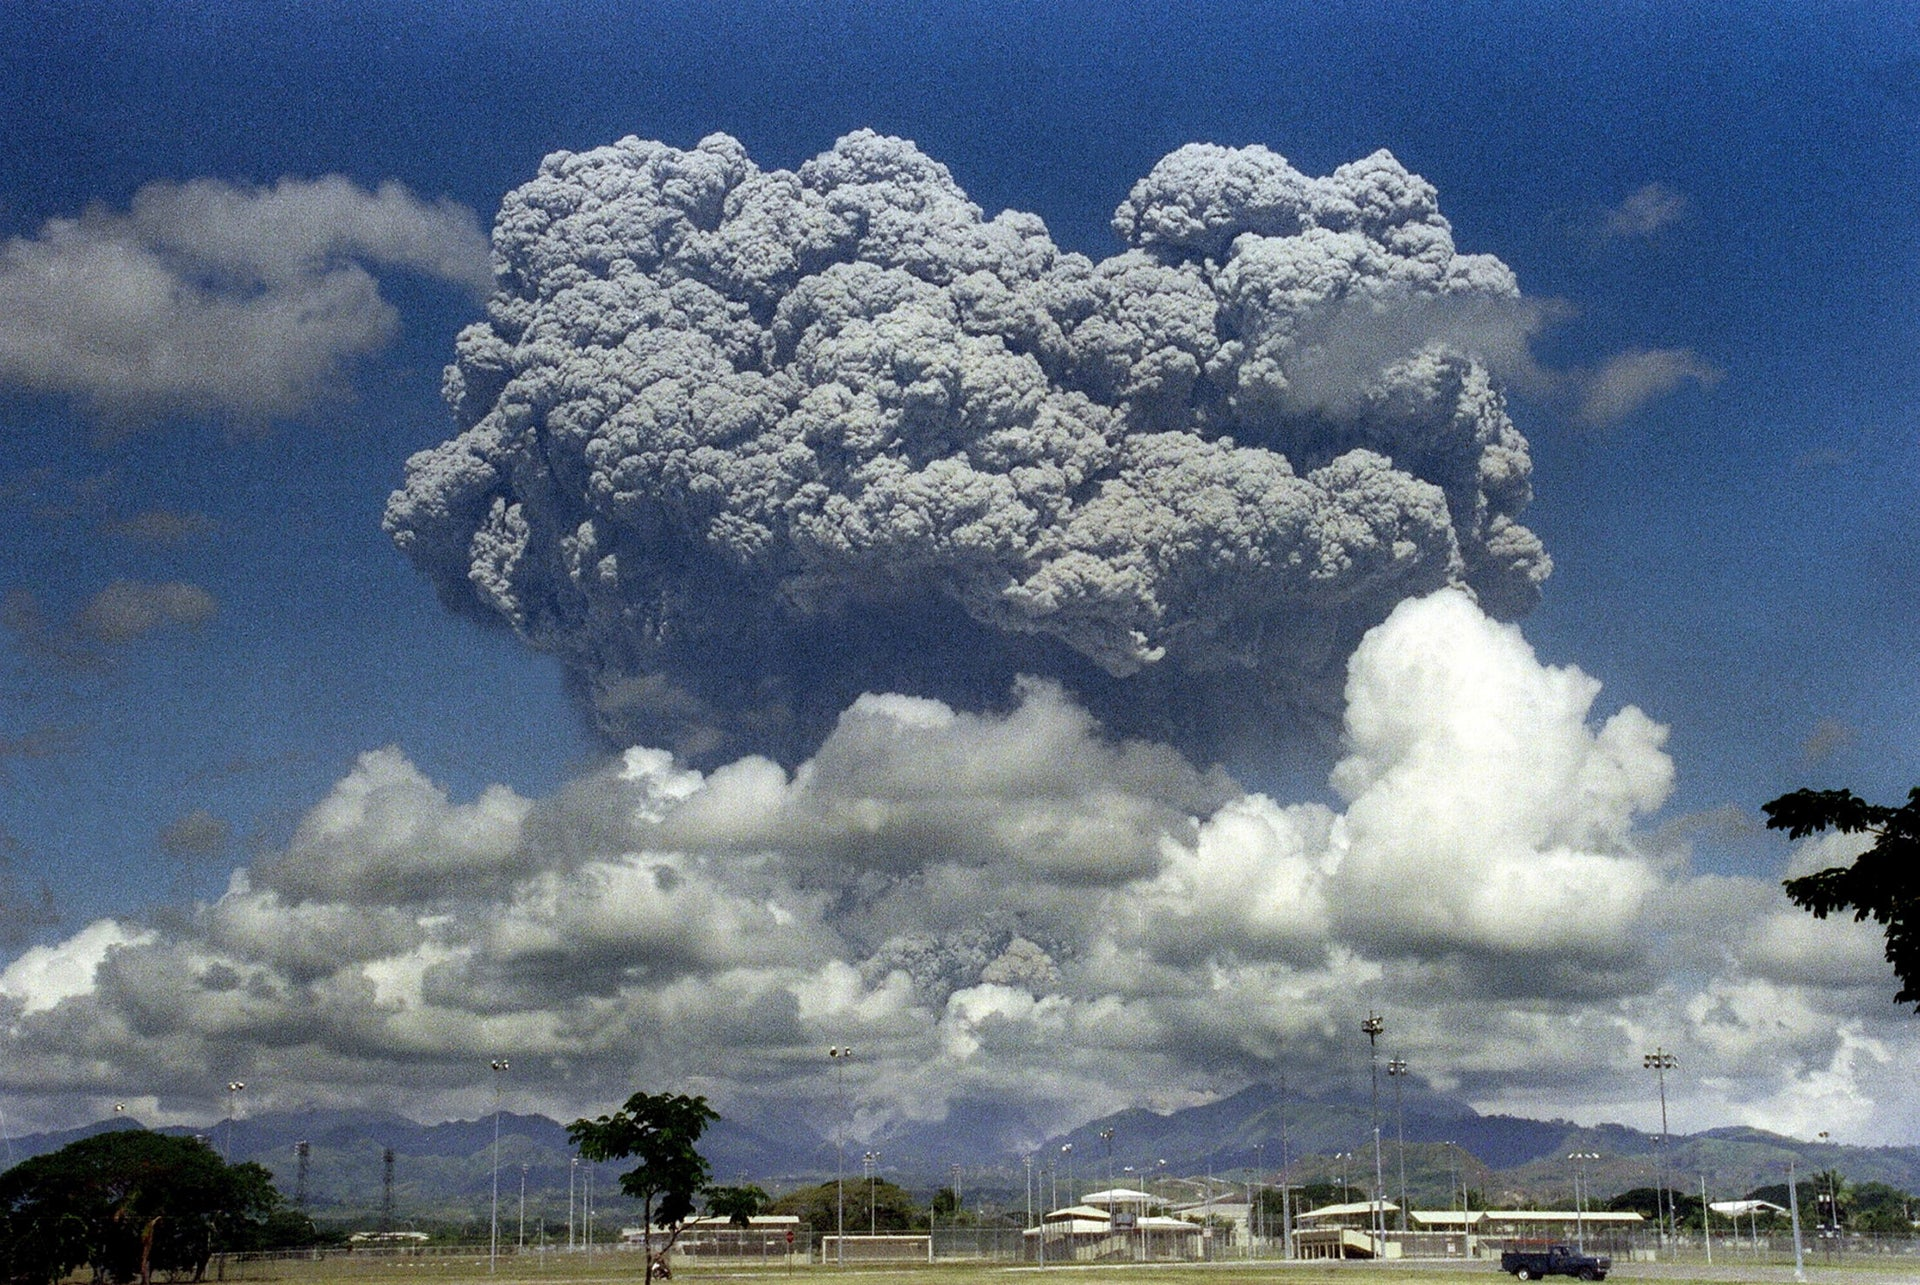 This picture taken 12 June 1991 shows a giant mushroom cloud of steam and ash exploding out of Mount Pinatubo volcano during its eruption